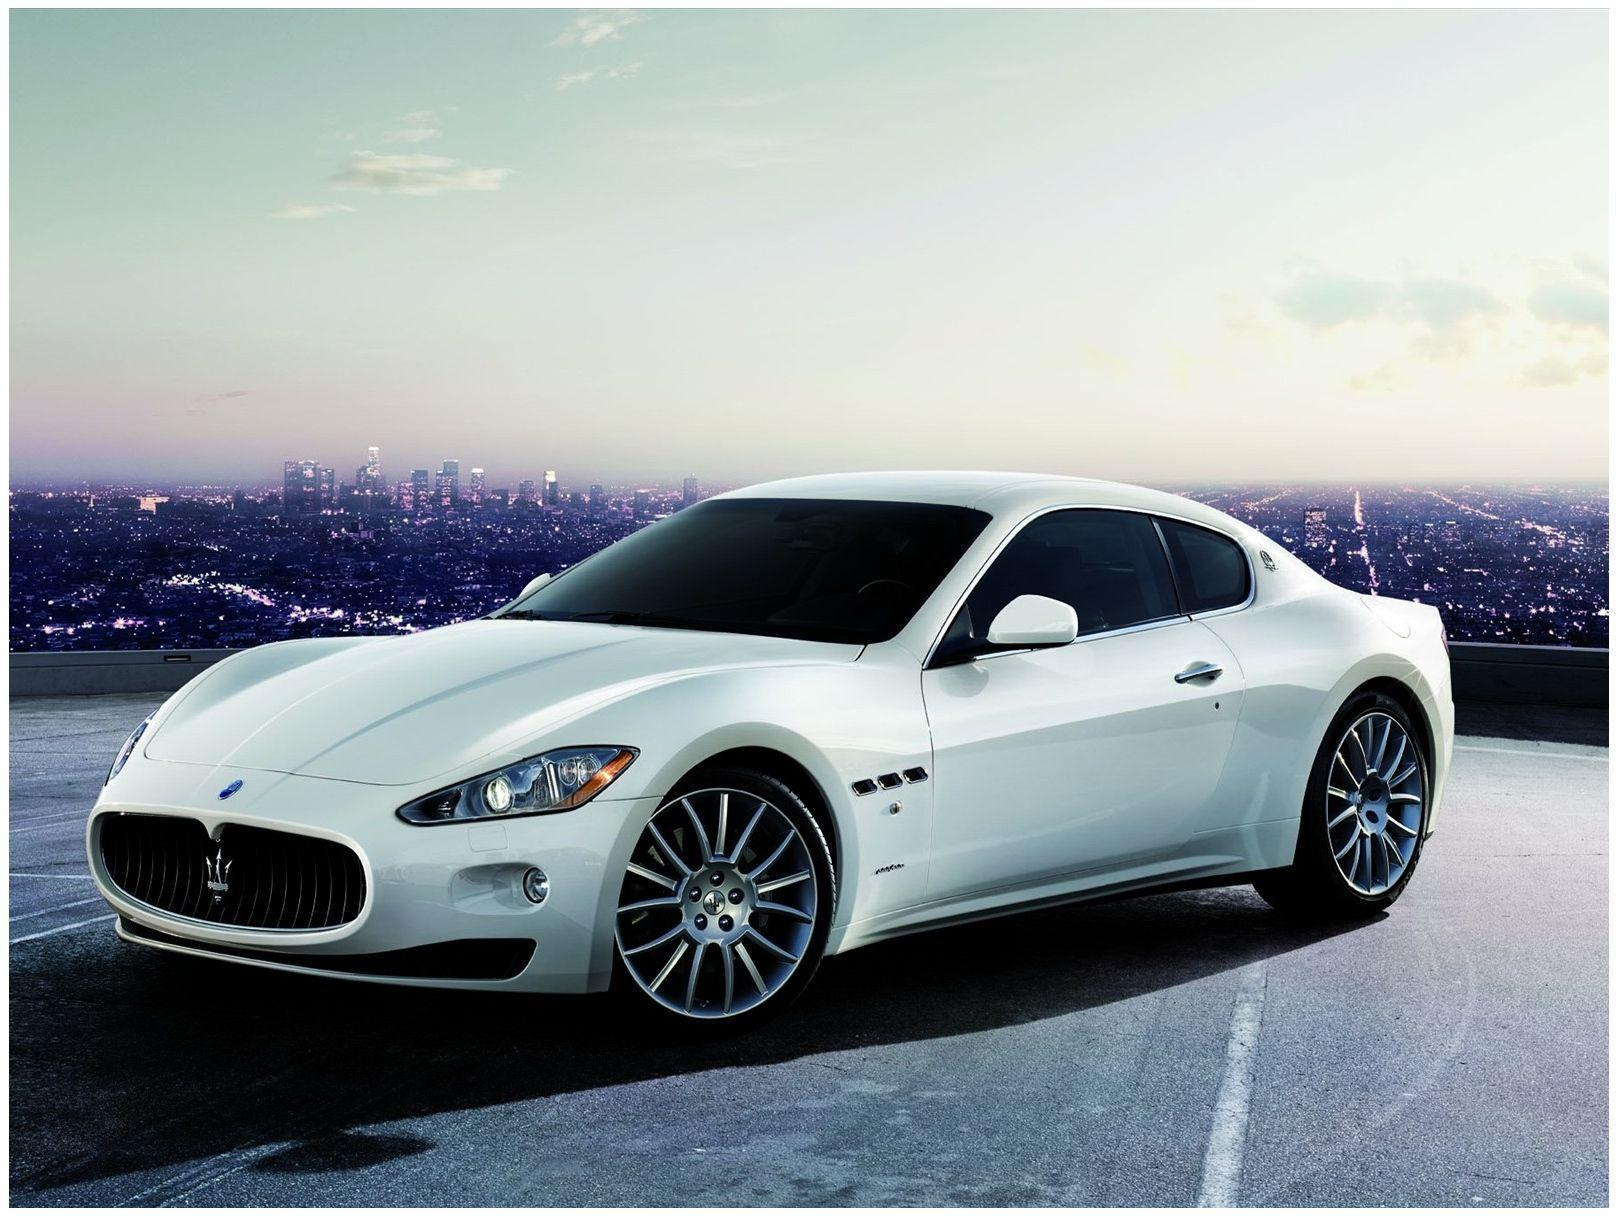 New Maserati Granturismo HD Car Wallpaper | HD Walls